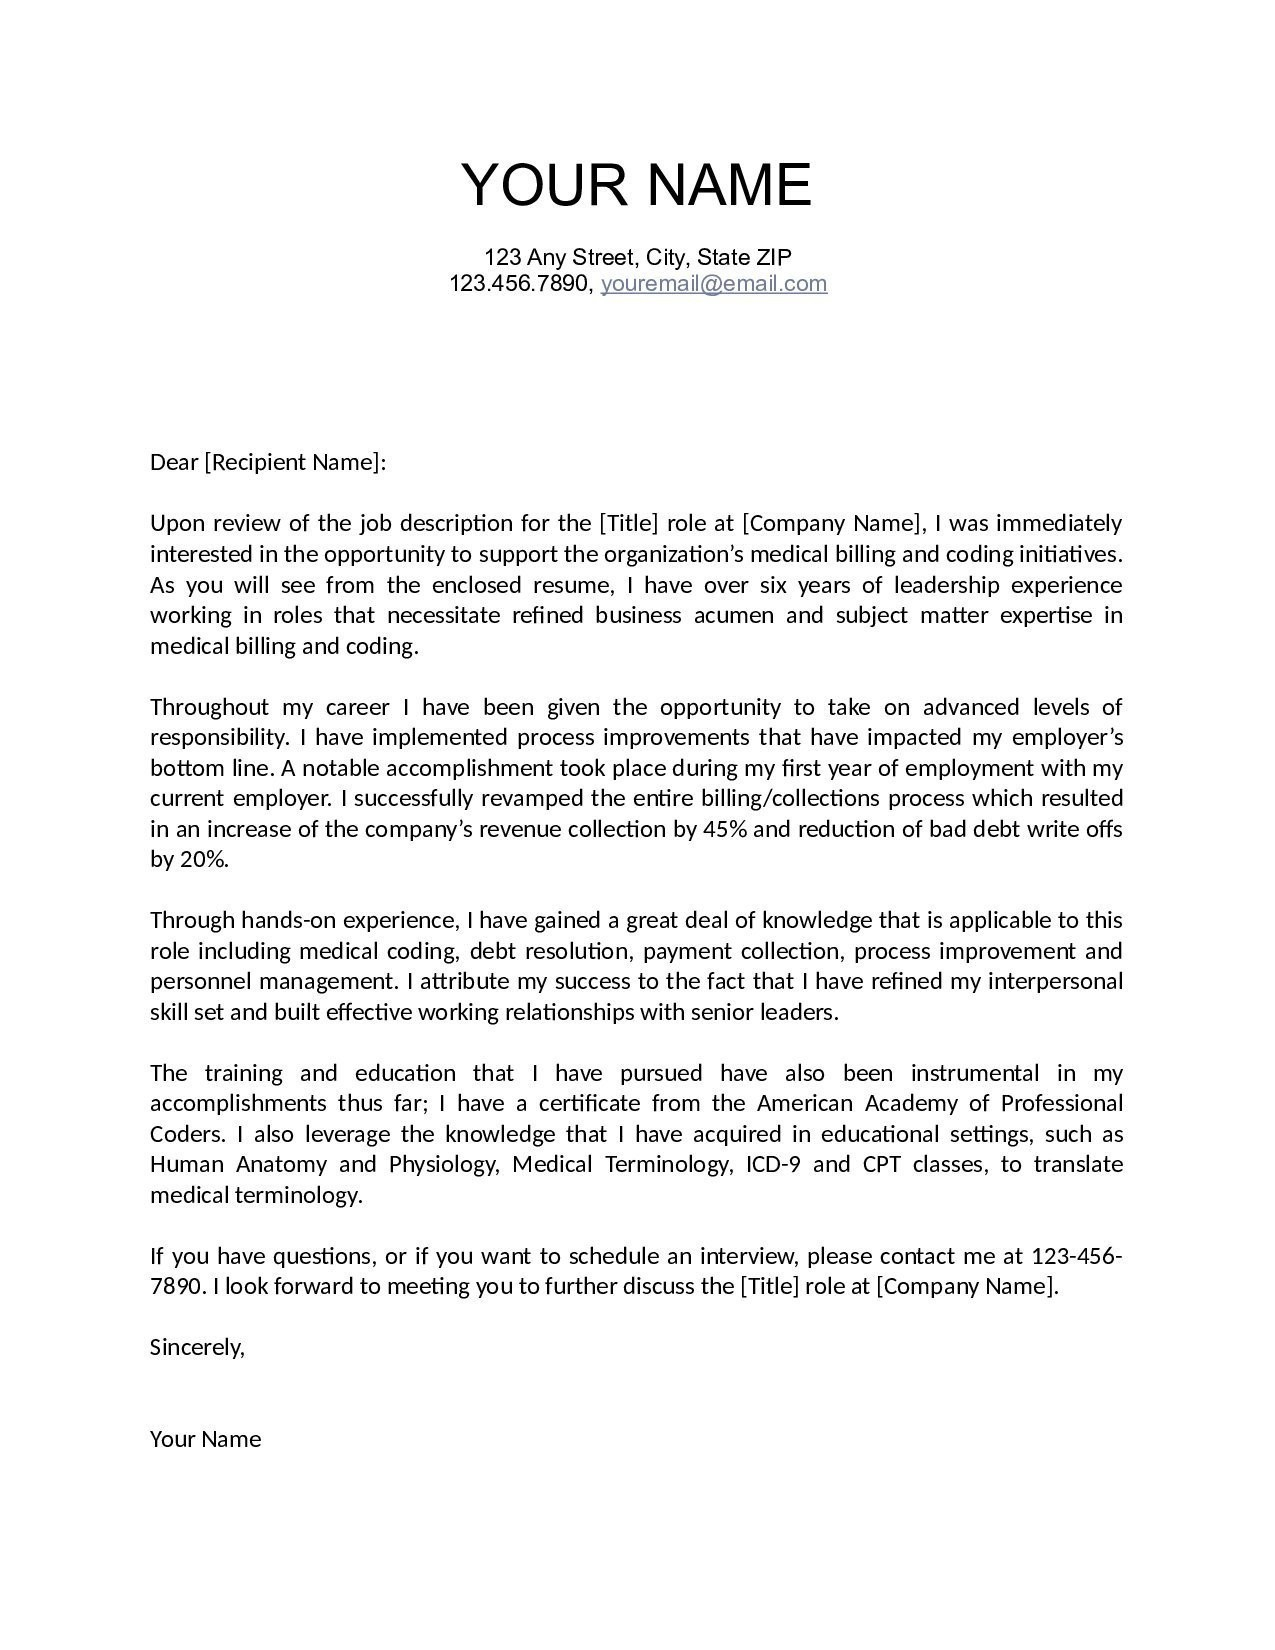 Letter Of Interest Email Template Examples Letter Templates